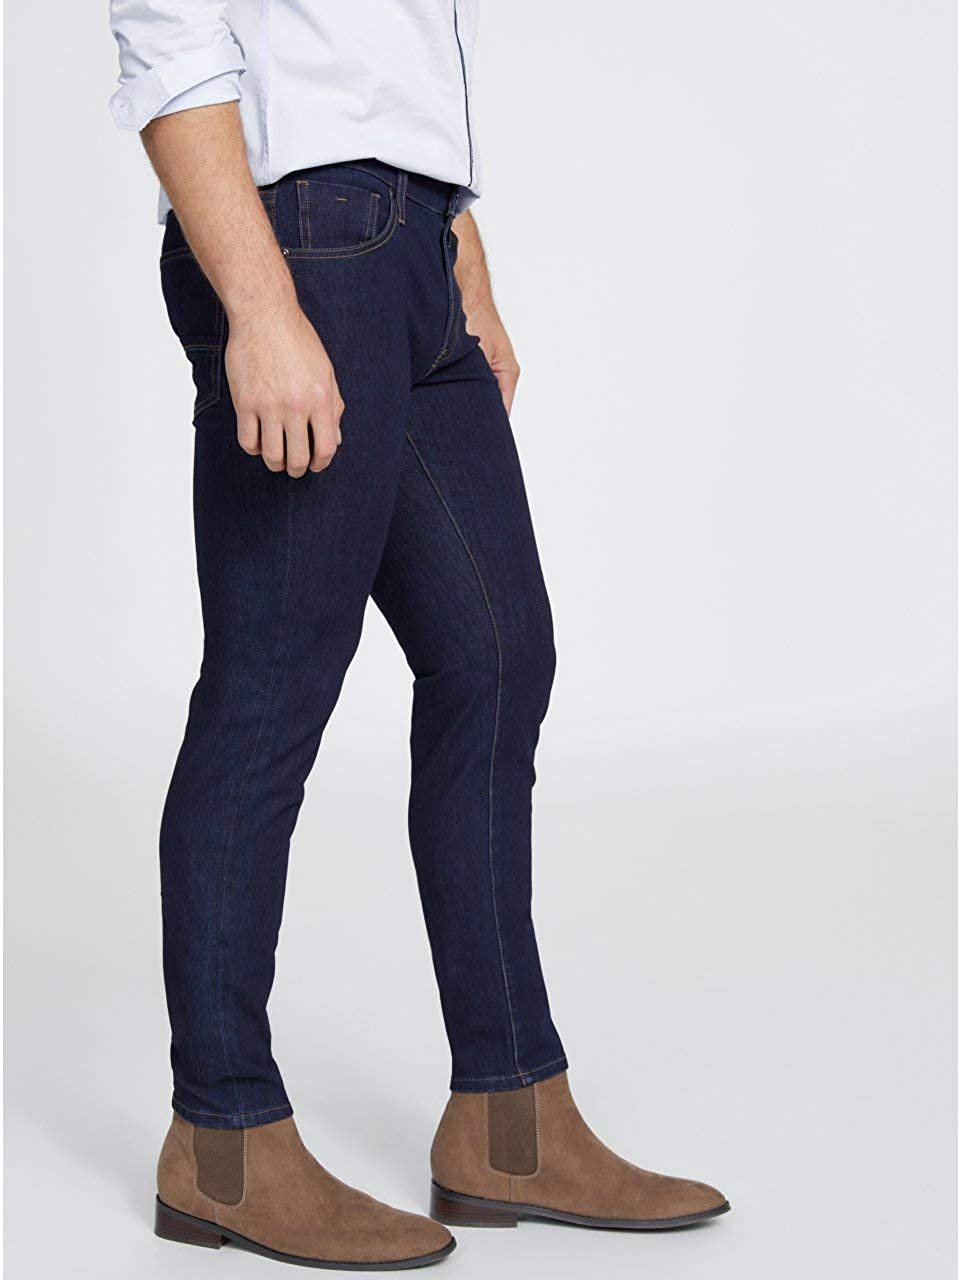 G by GUESS Mens Prime Super-Skinny Jeans